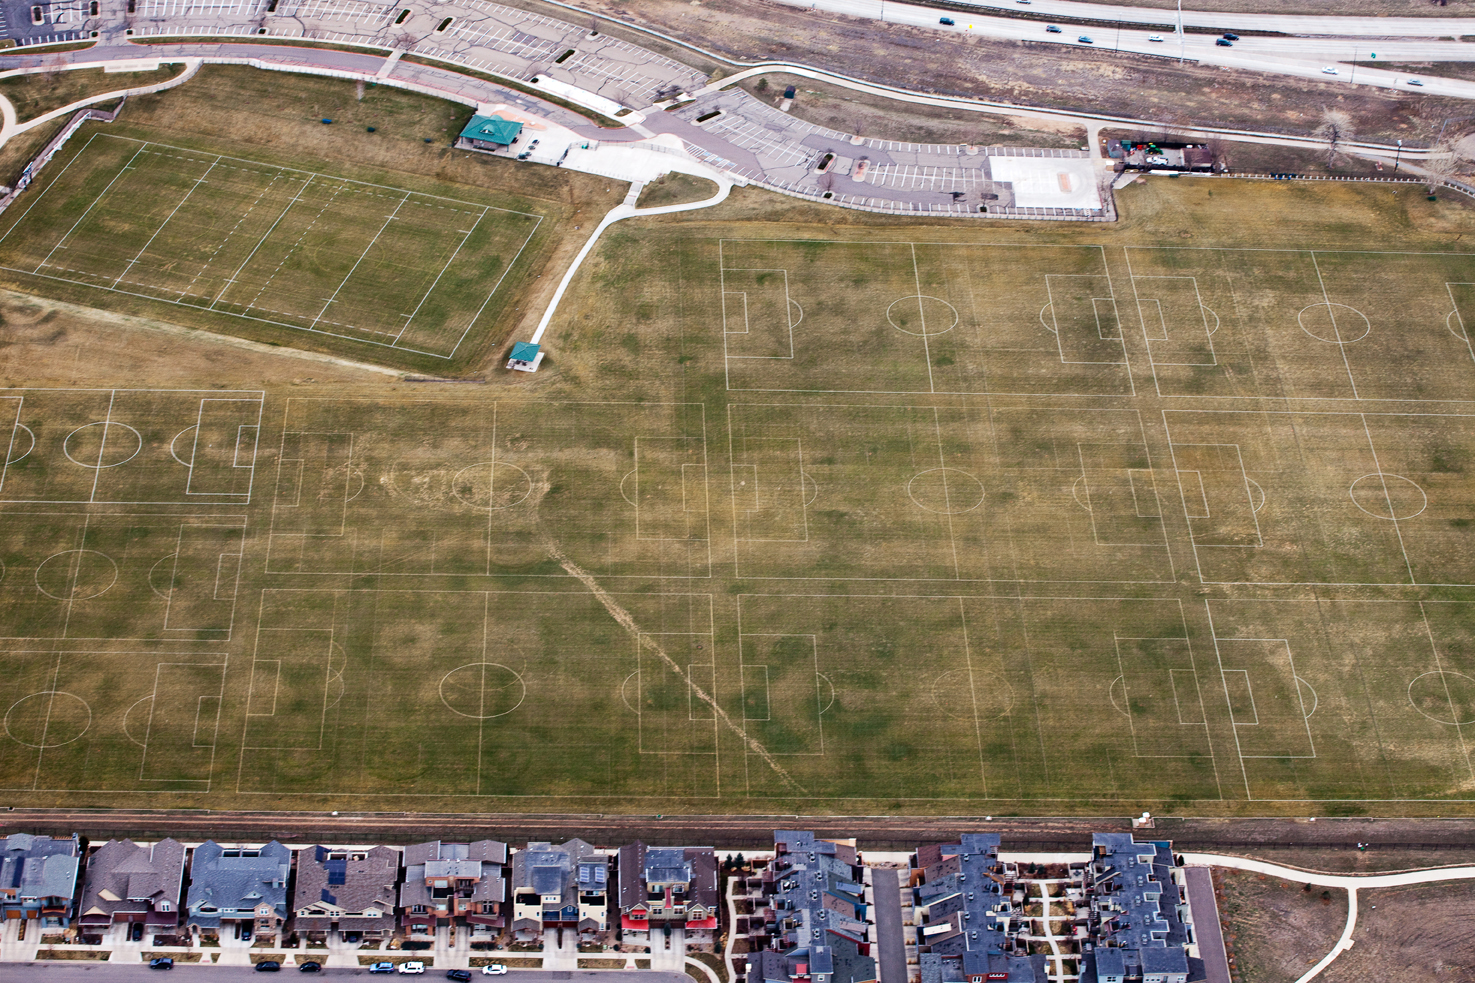 Sports fields from above